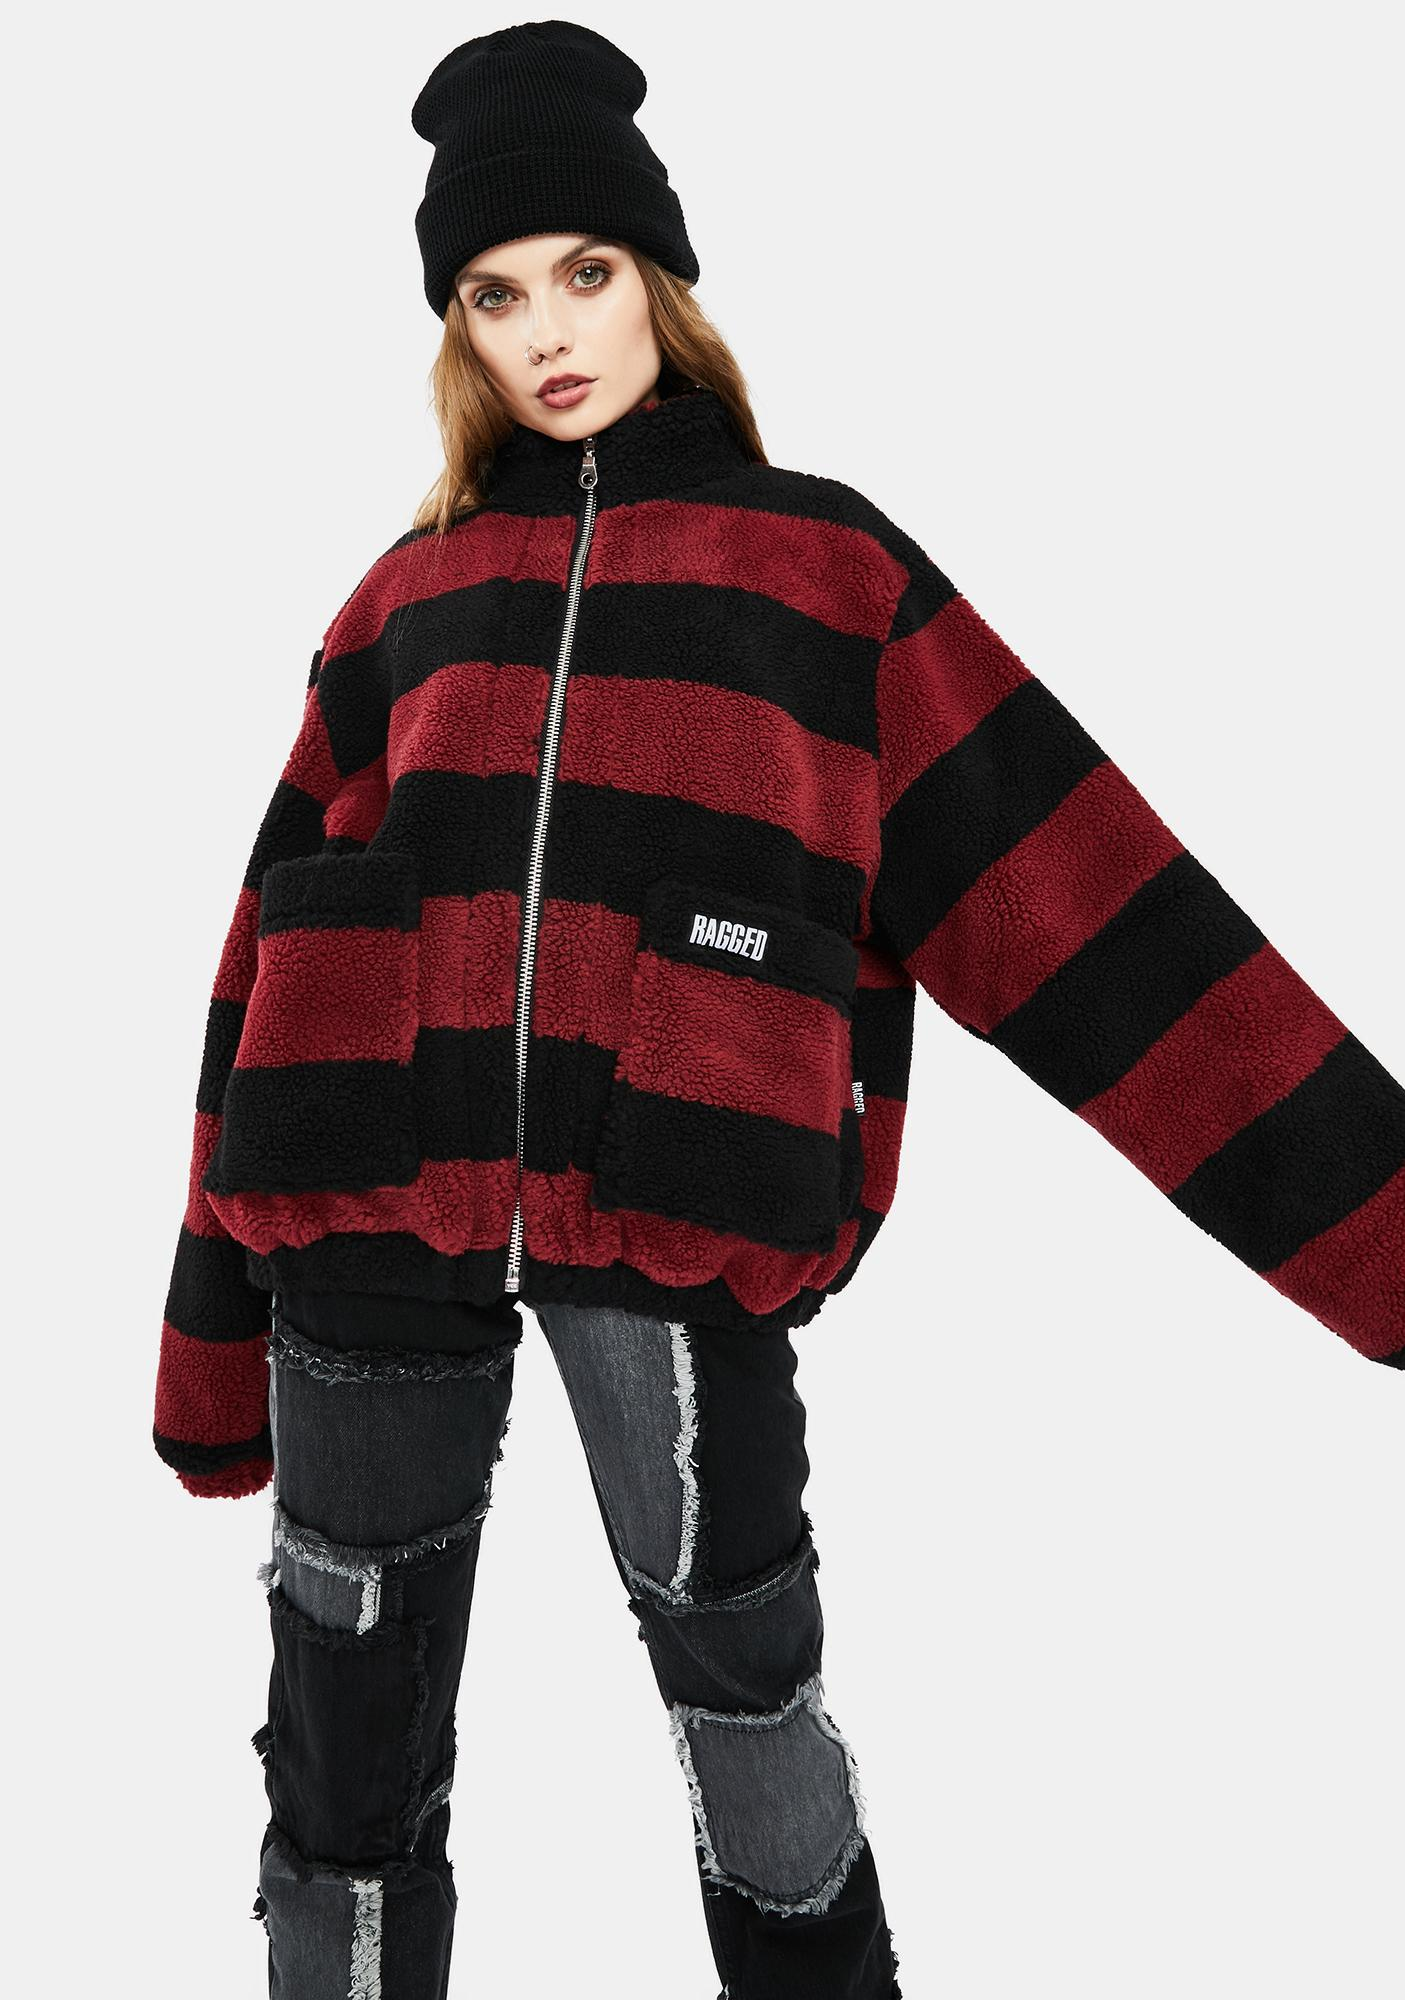 The Ragged Priest Menace Striped Teddy Jacket